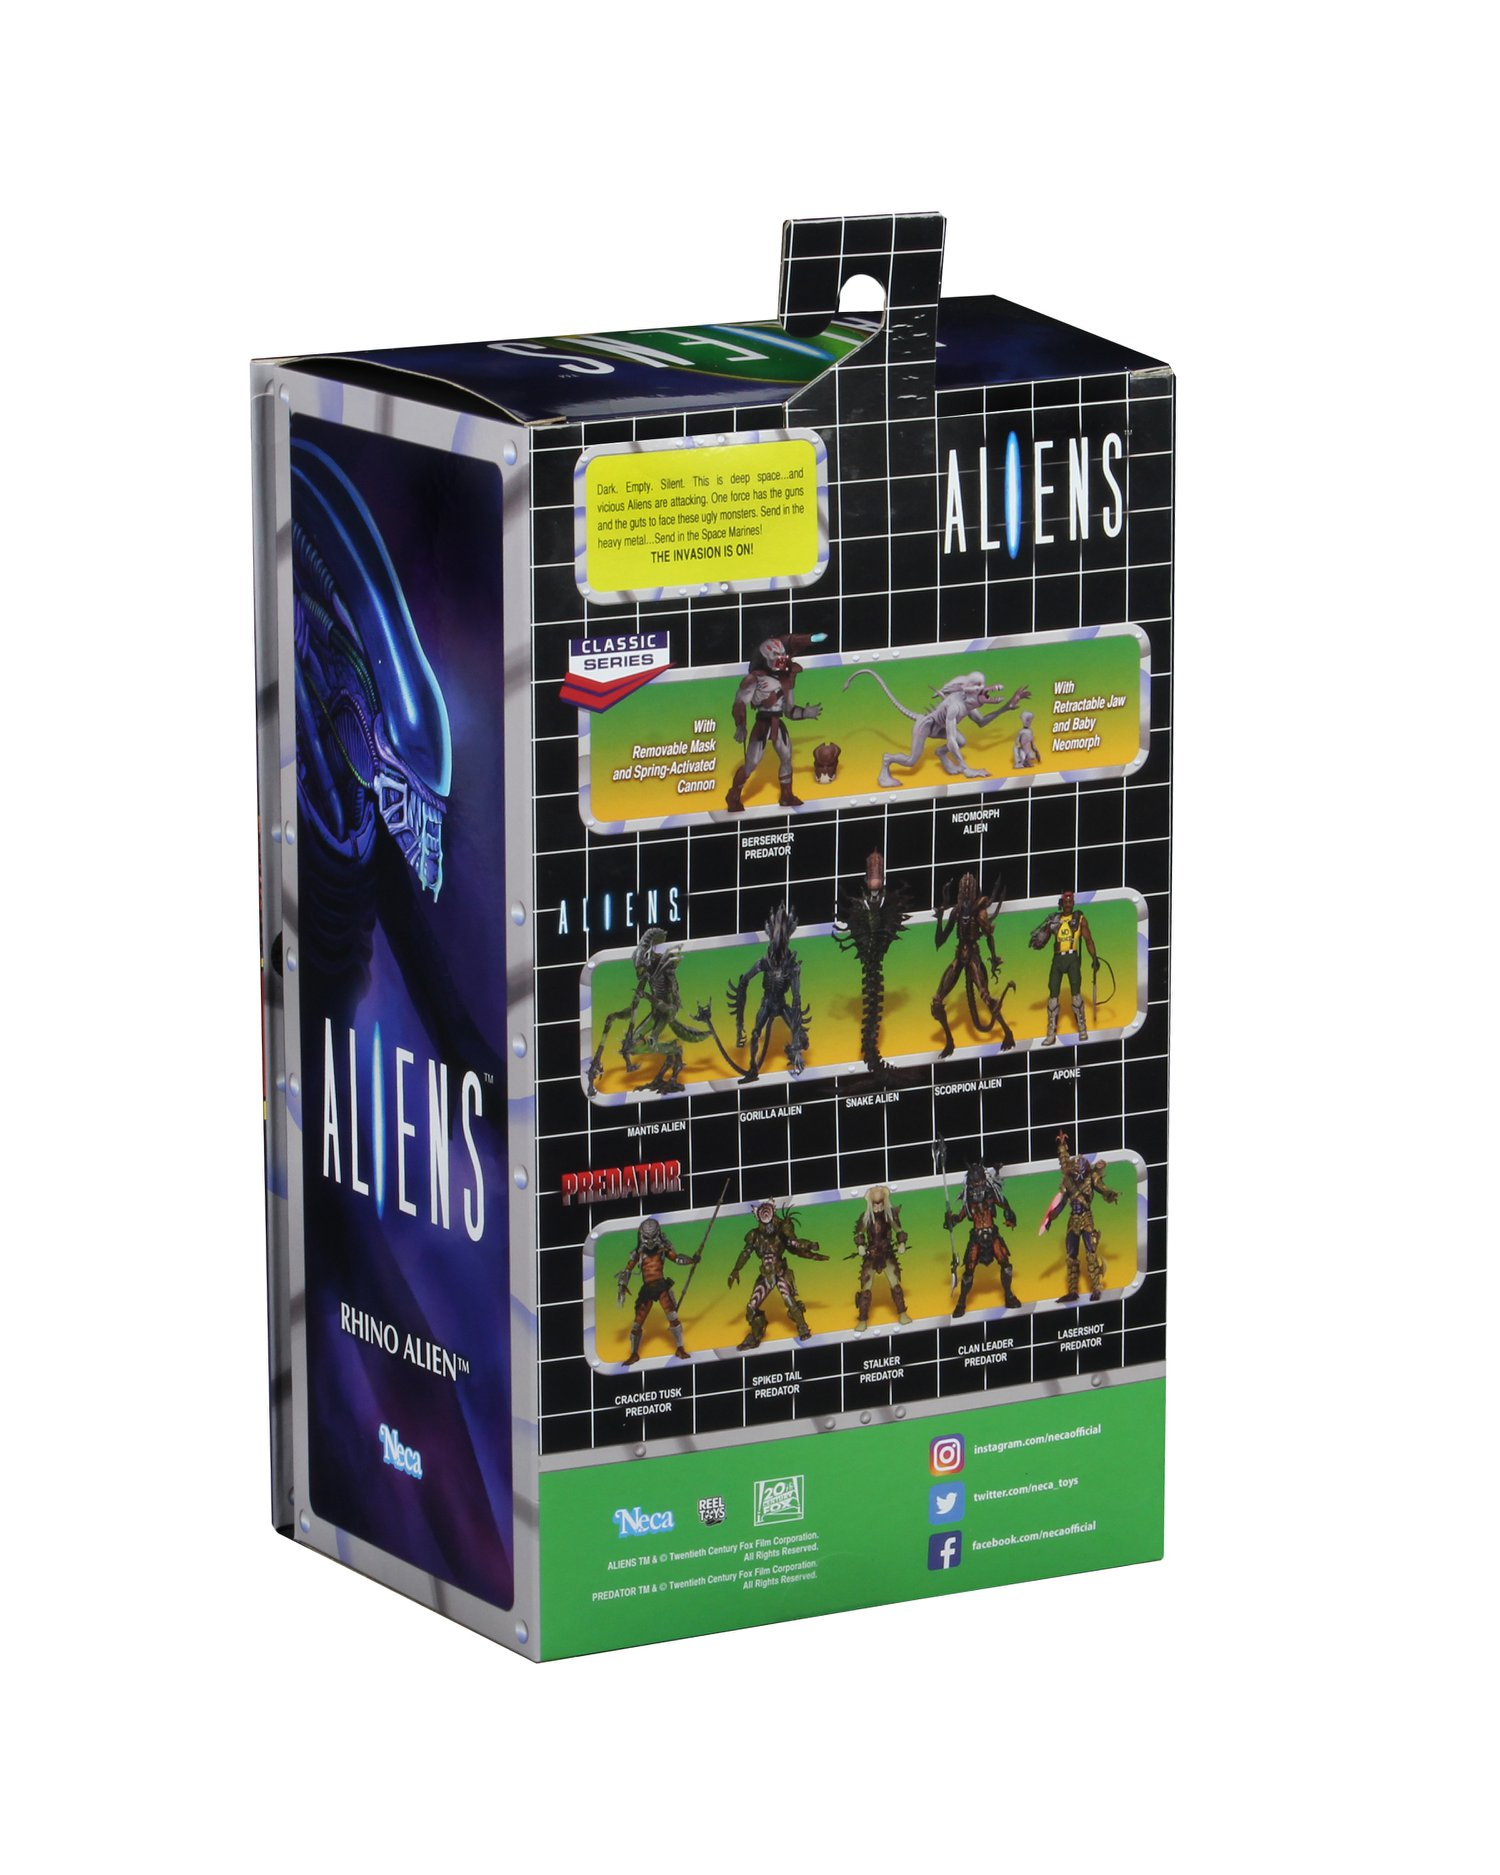 NECA Rhino Alien Packaging 002